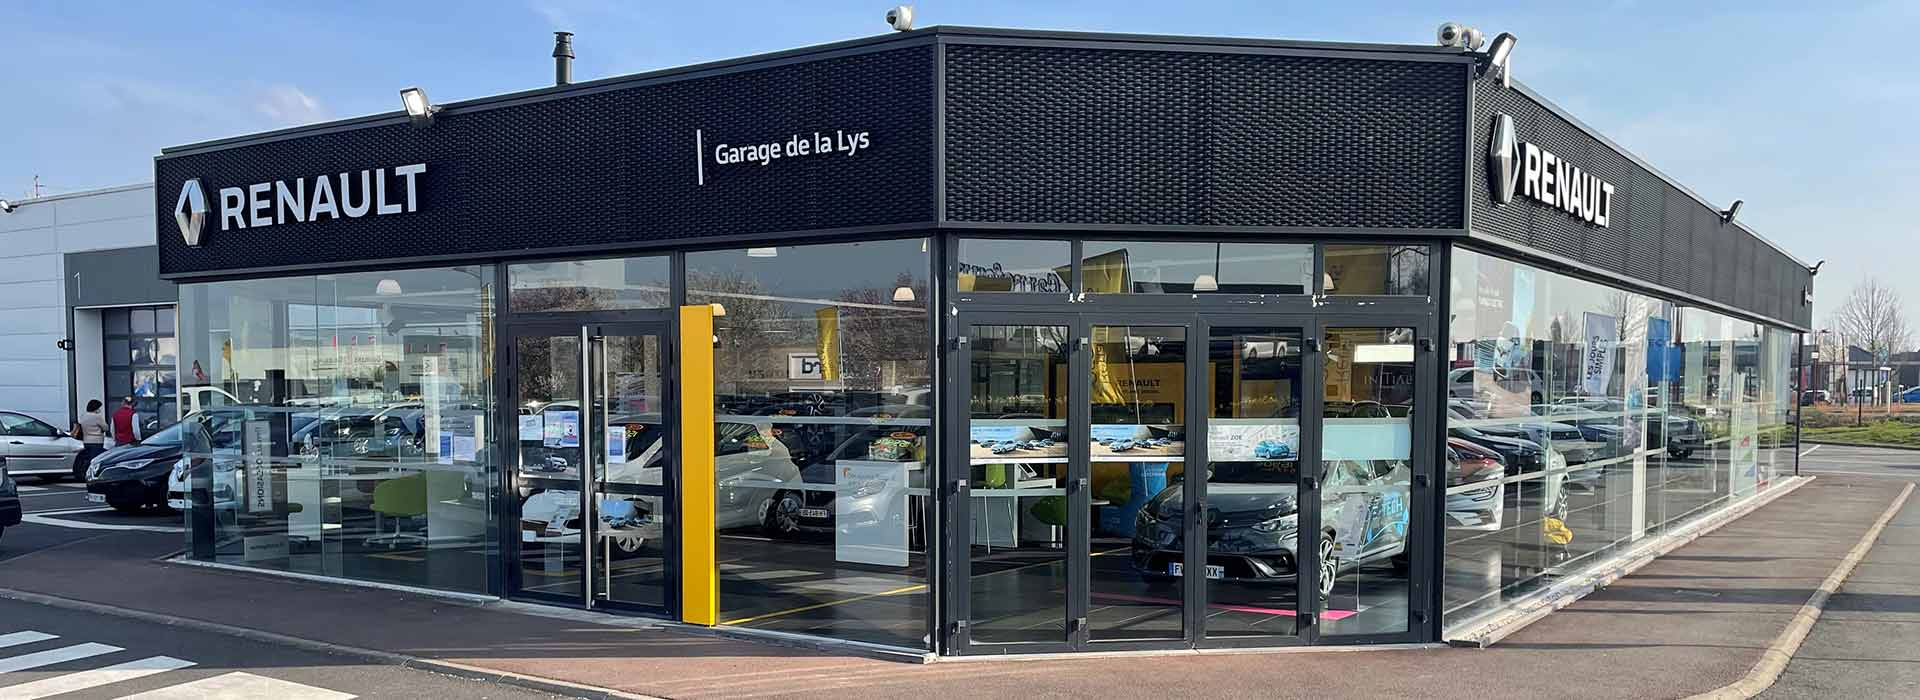 Dacia hazebrouck concessionnaire garage nord 59 for Garage ford hazebrouck